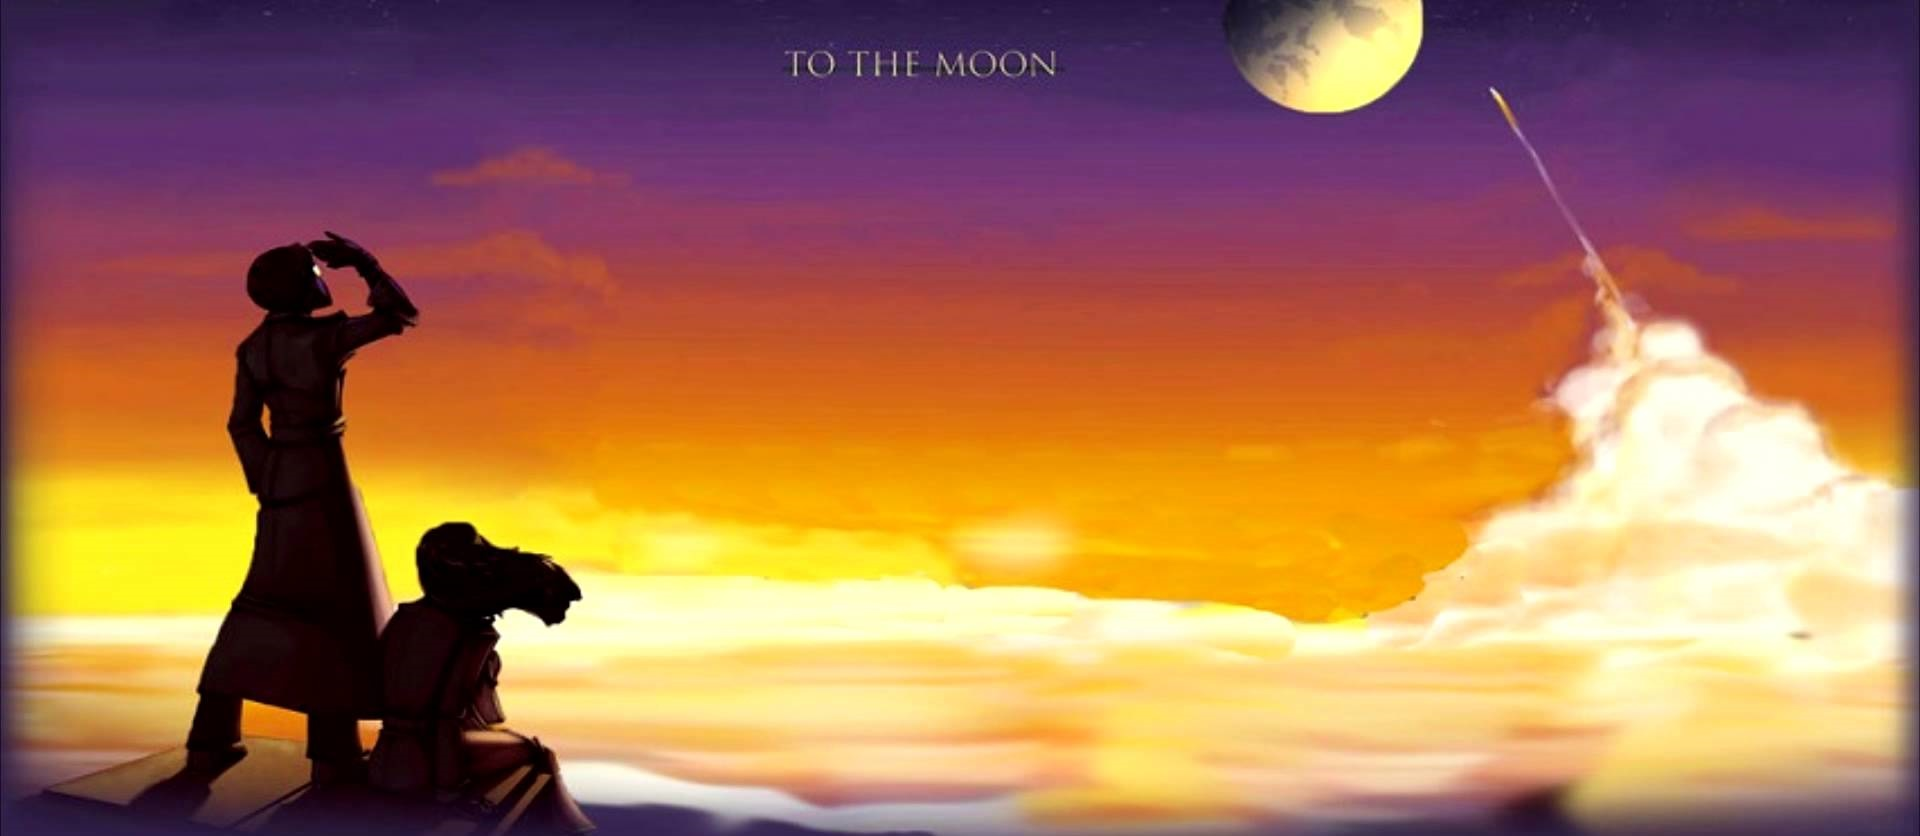 To The Moon 2011